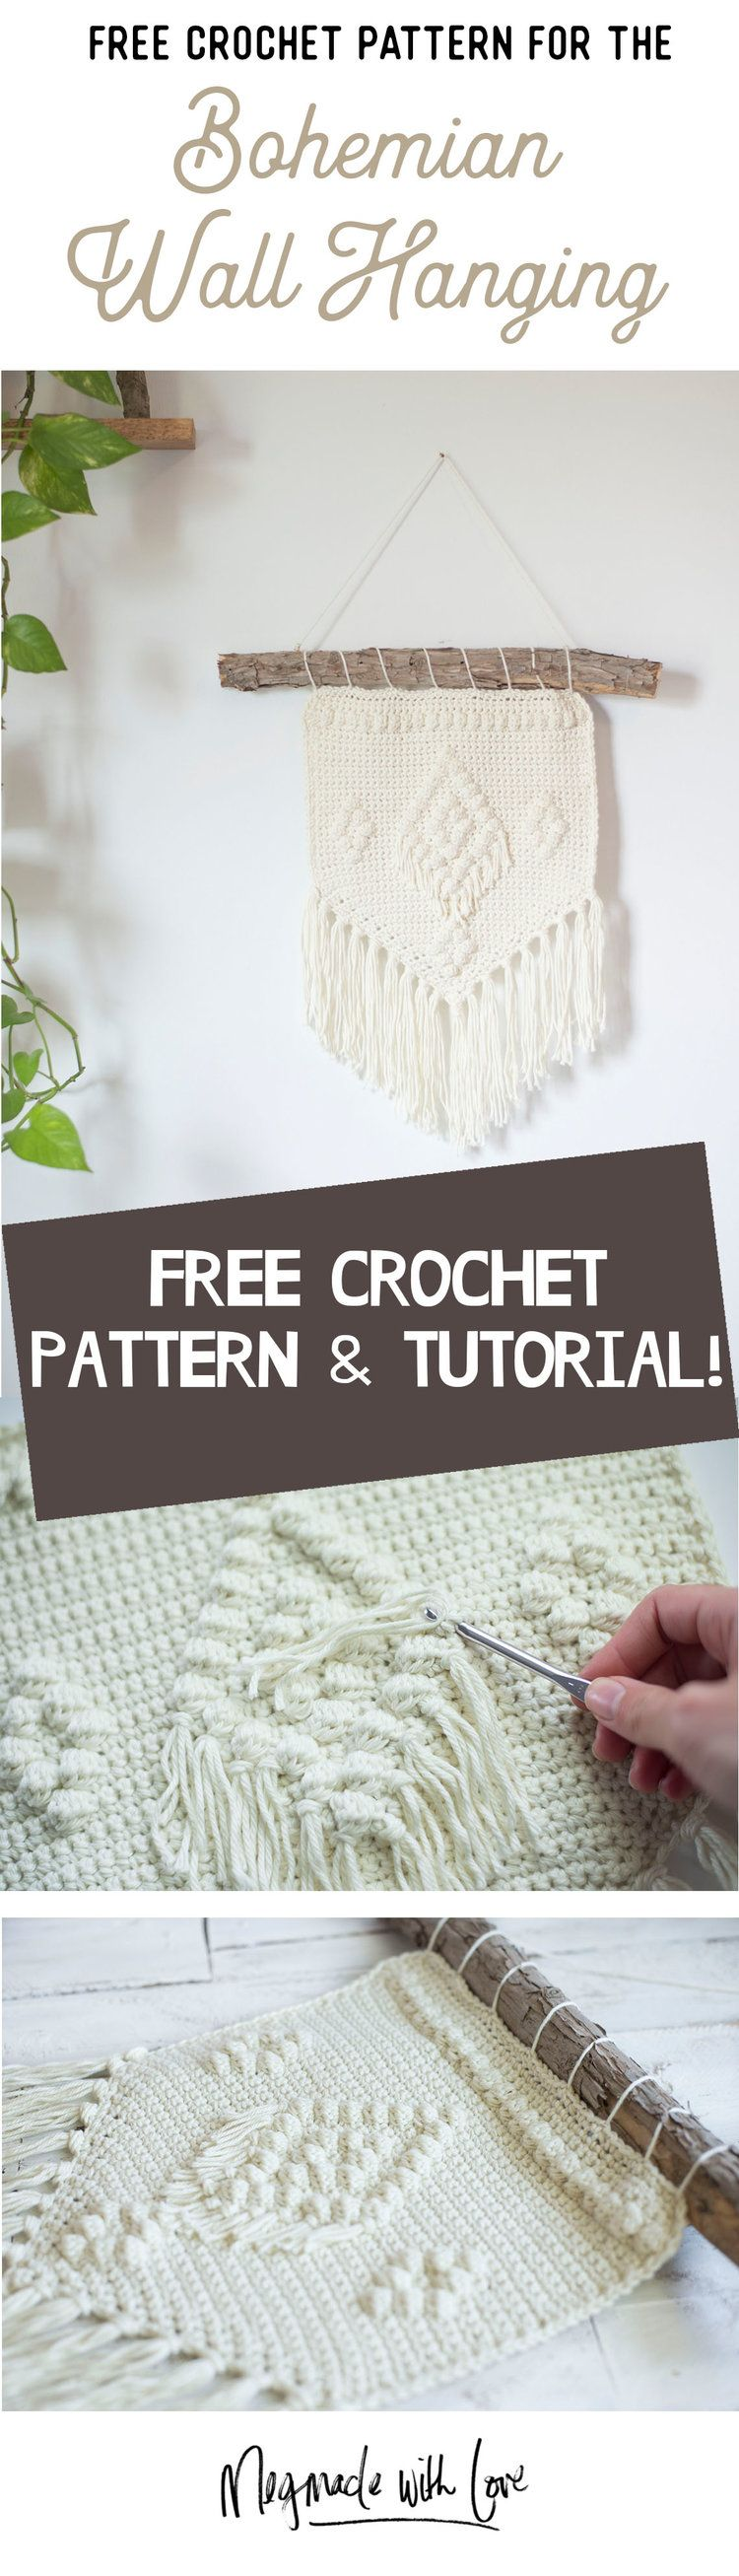 Free Crochet Pattern - The Bohemian Wall Hanging | Megmade with Love ...